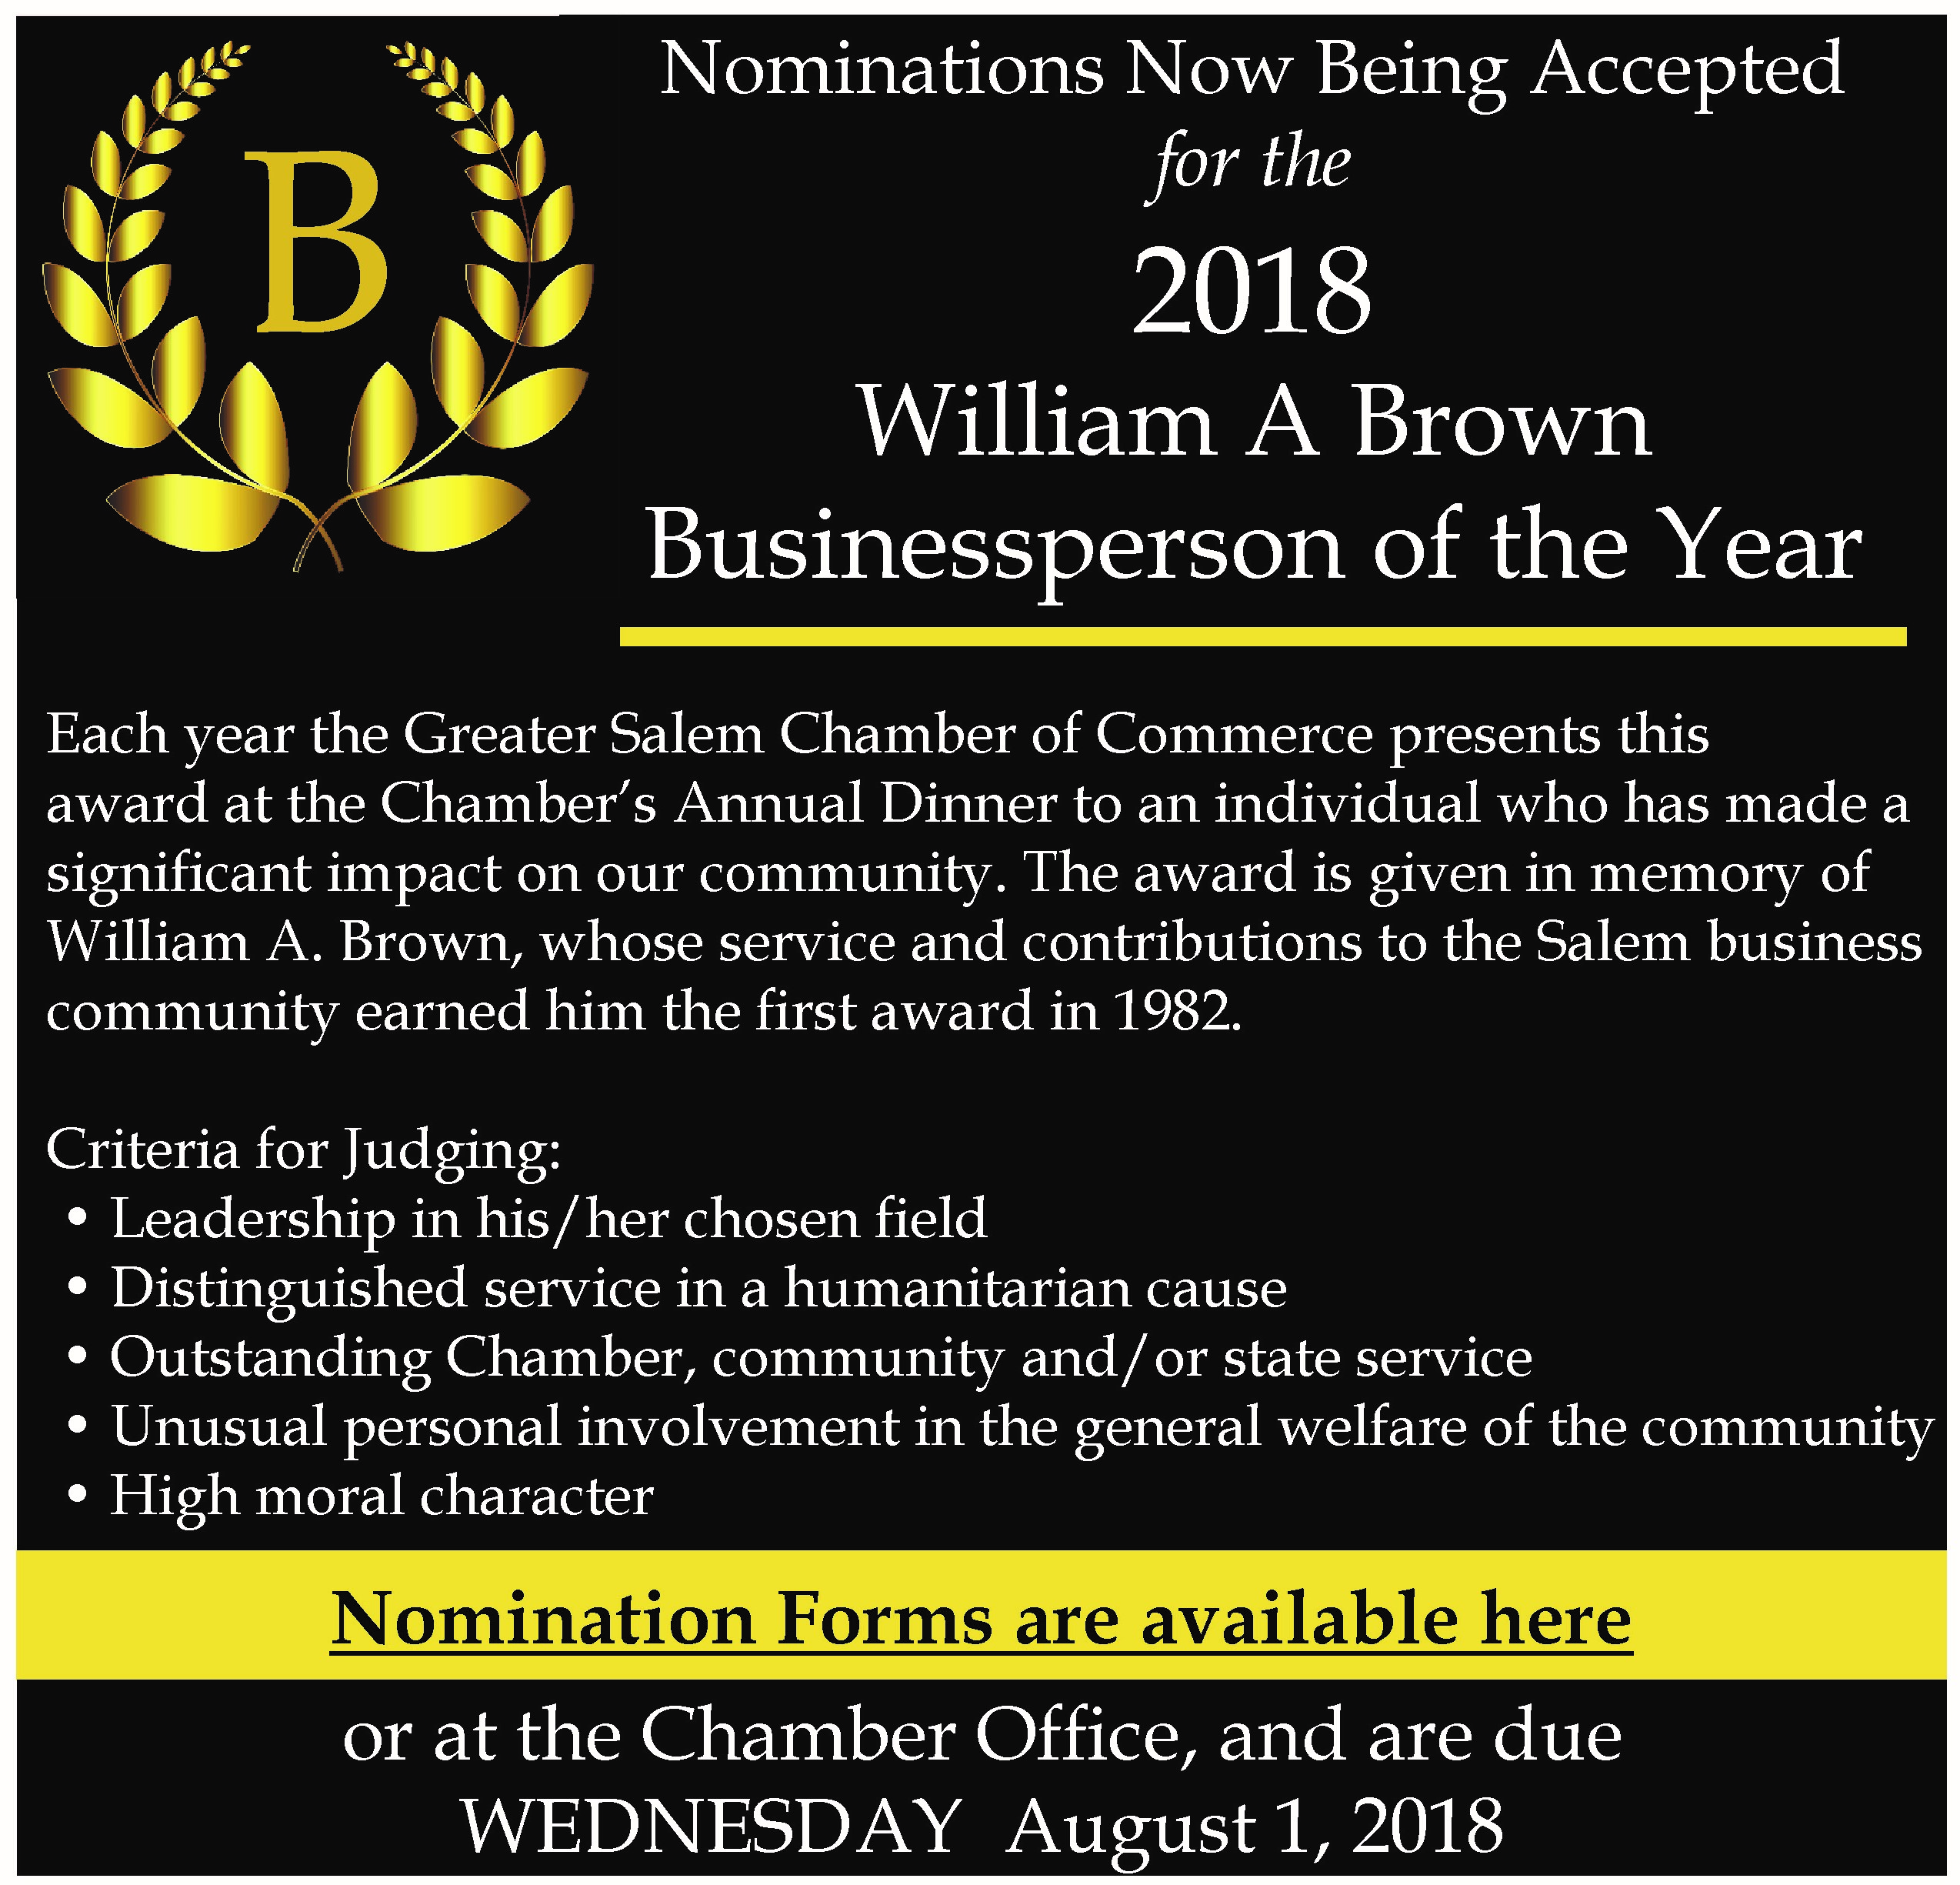 call-for-nominations(1).jpg